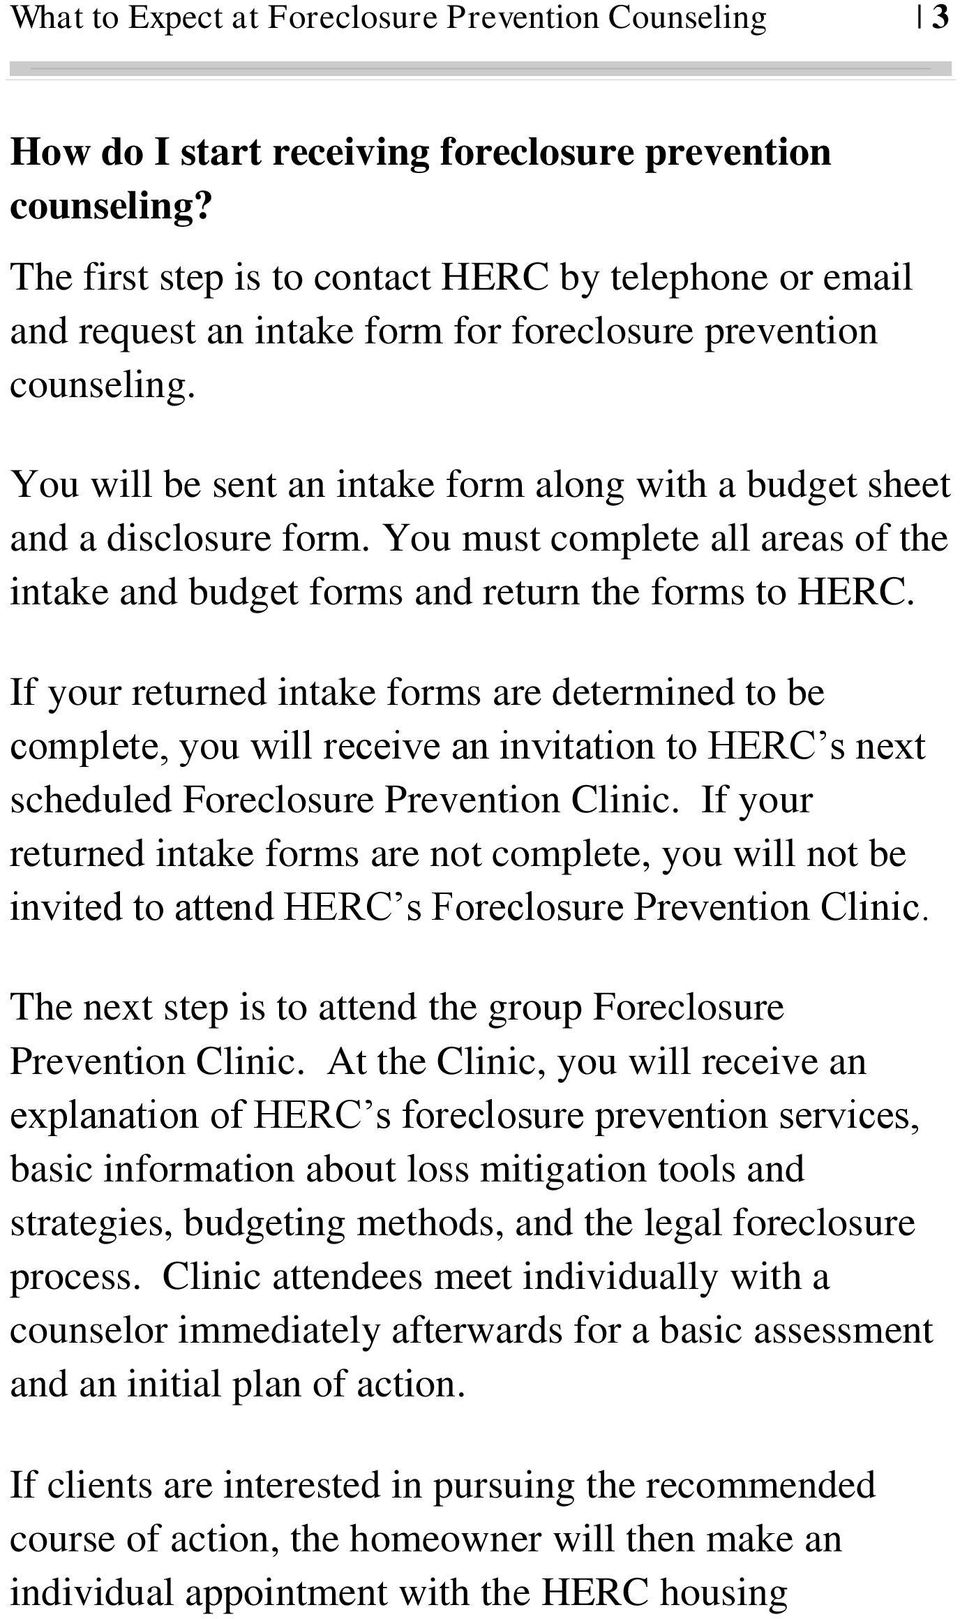 You will be sent an intake form along with a budget sheet and a disclosure form. You must complete all areas of the intake and budget forms and return the forms to HERC.